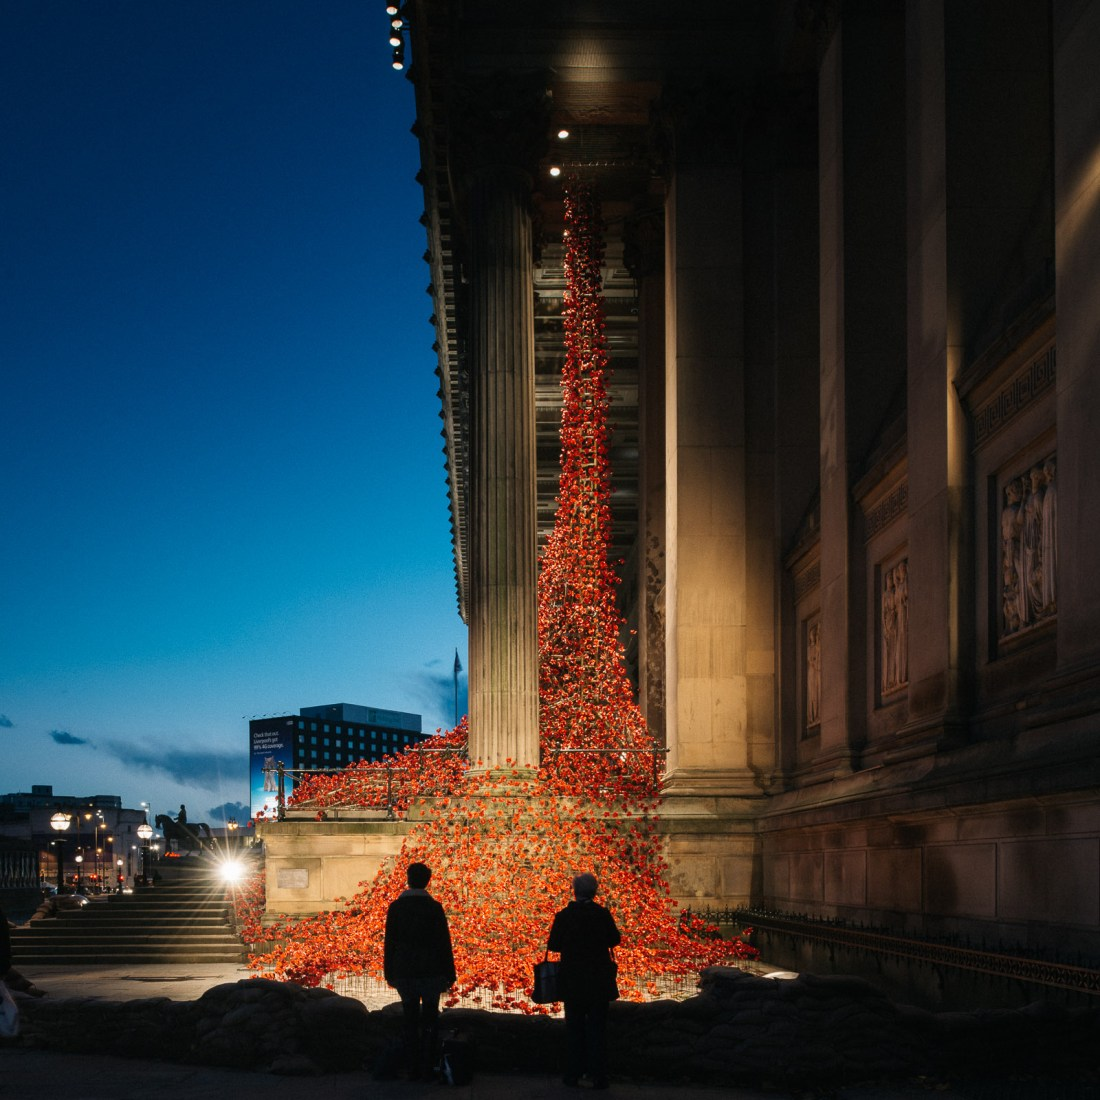 poppies-st-georges-hall-liverpool-3128-pete-carr